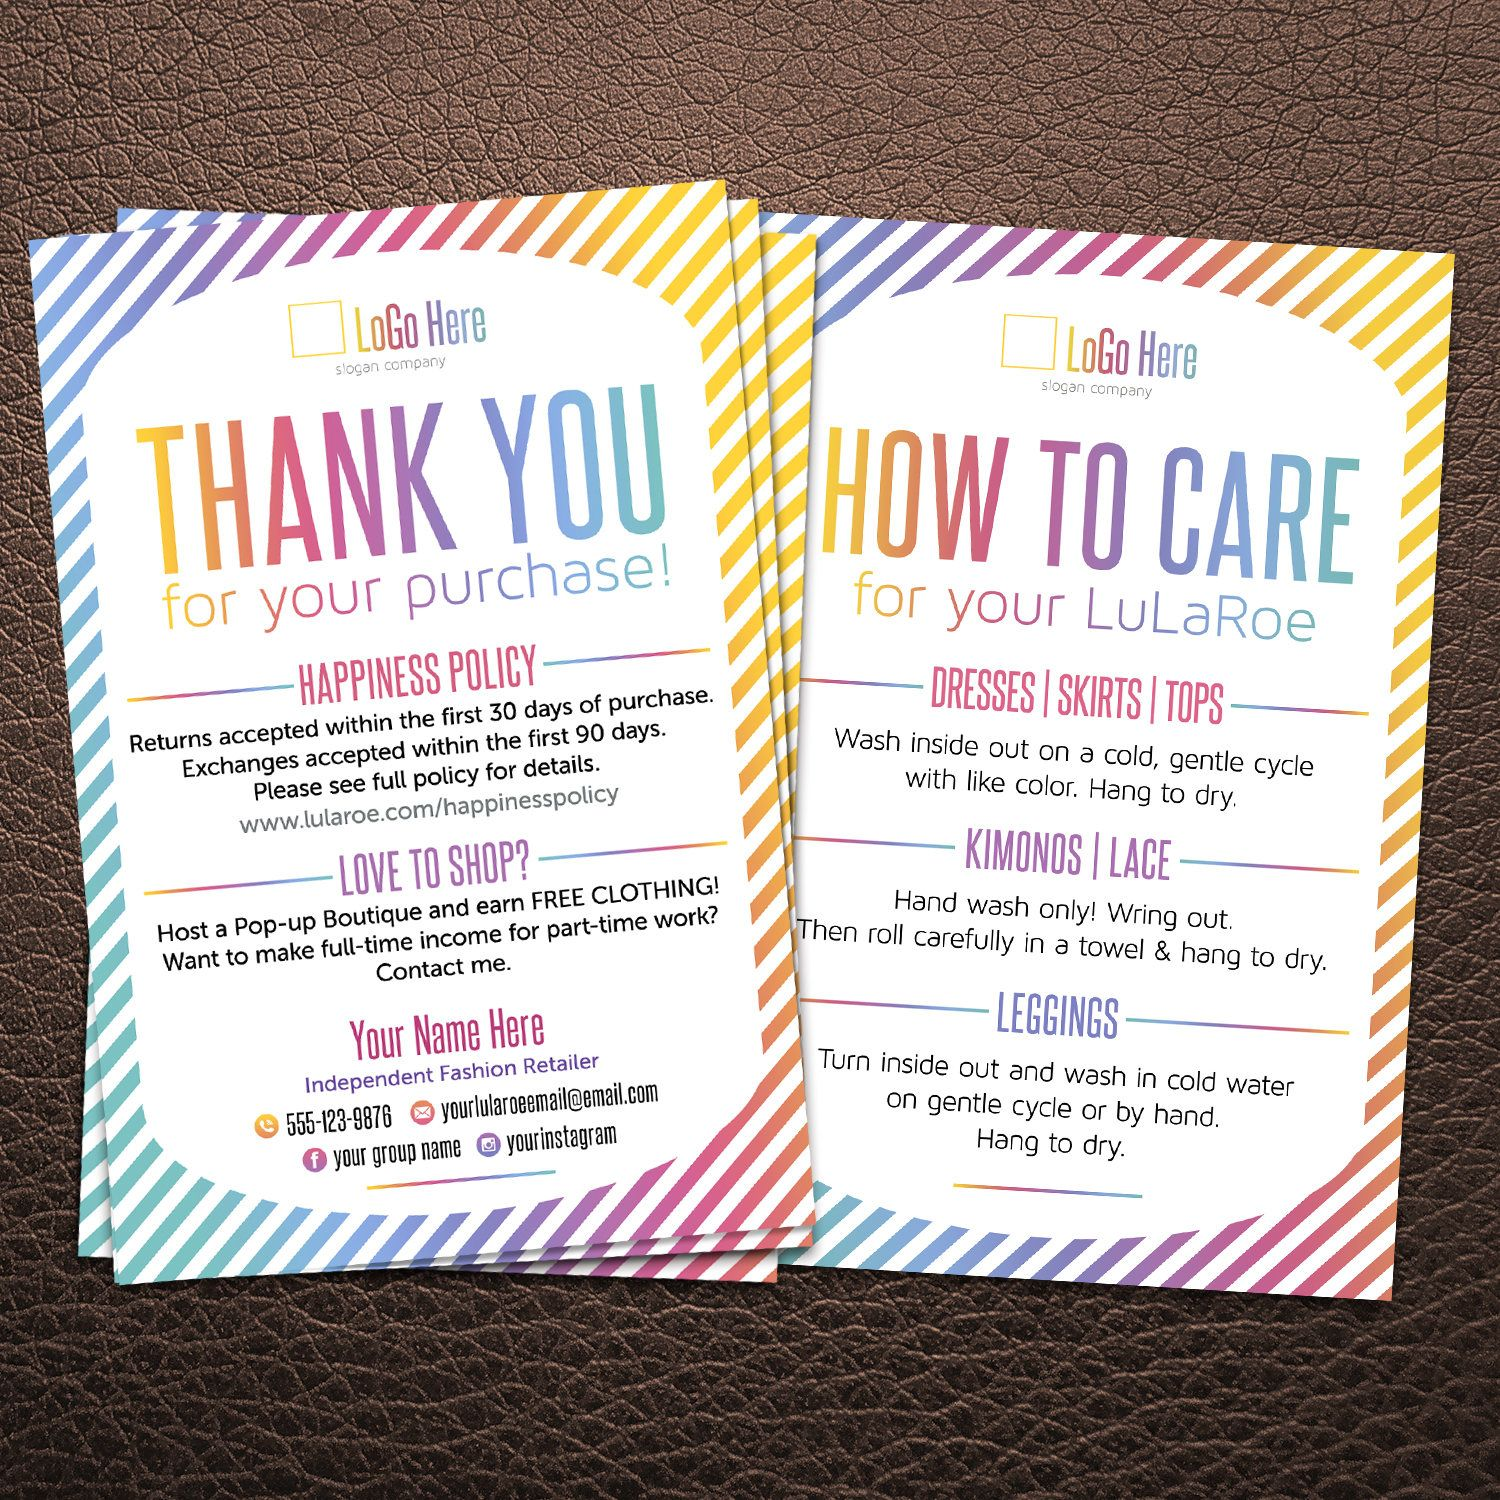 Thank you card care instructions card home office approved fonts thank you card care instructions card home office approved fonts color consultant retailer lula marketing thank you are card 6 reheart Choice Image